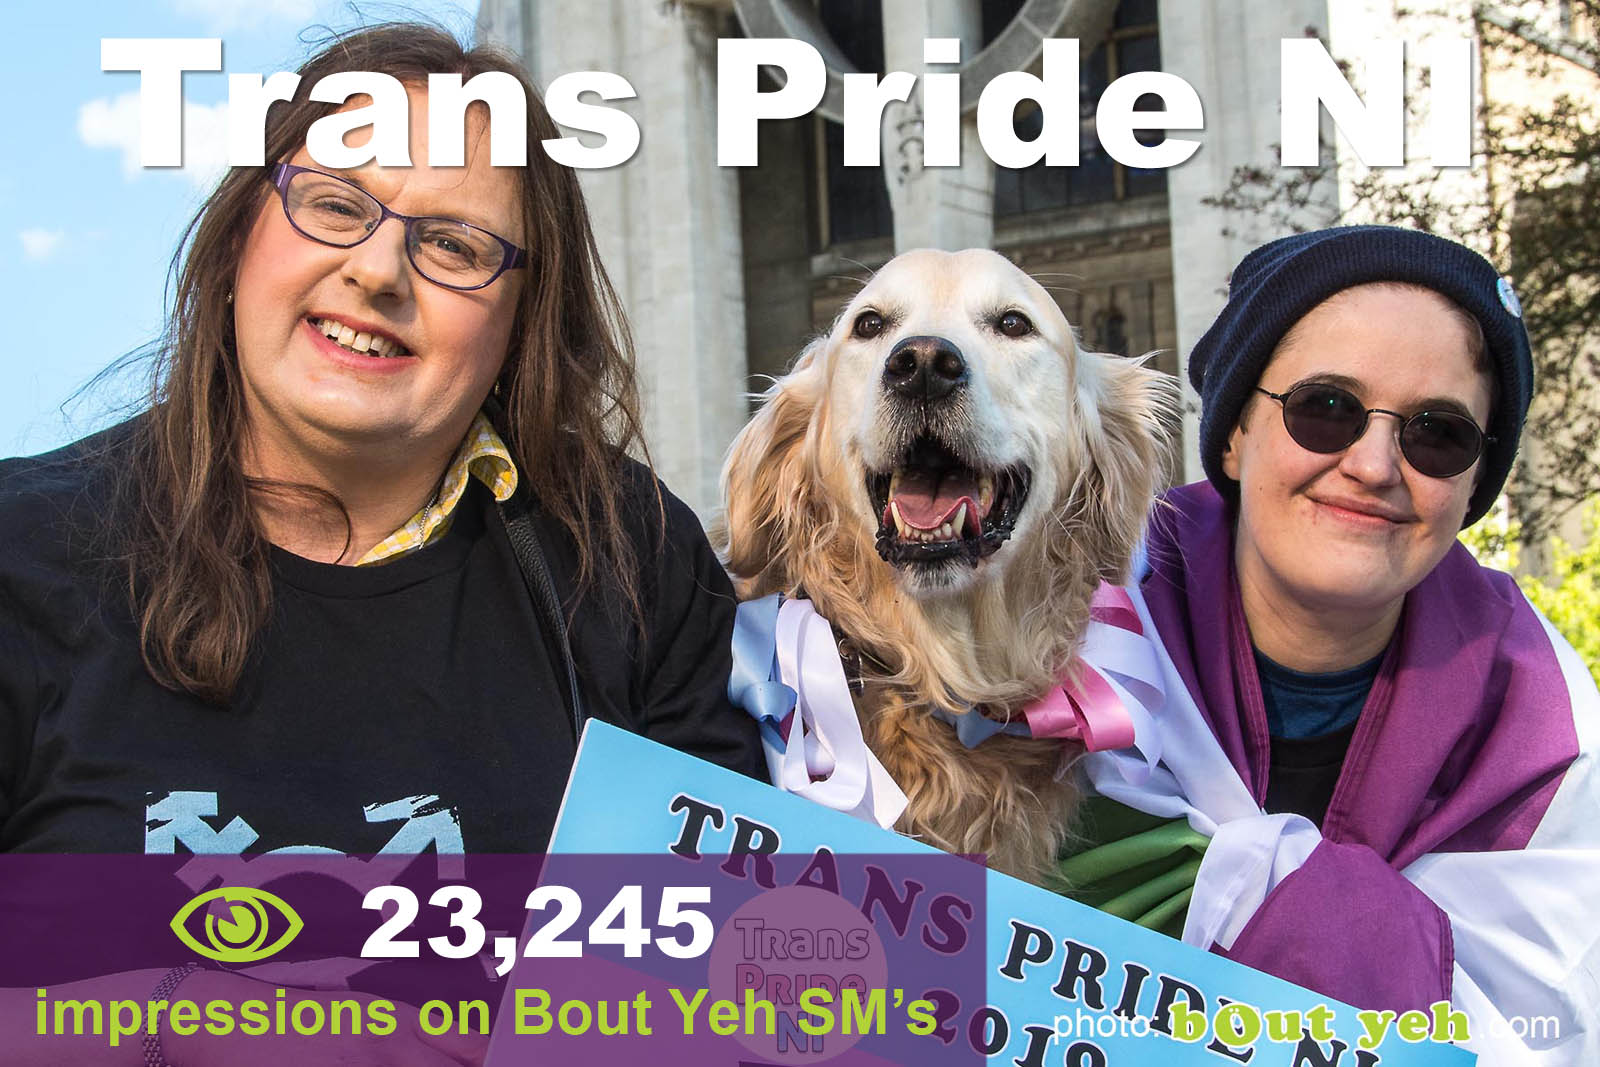 Social Media Marketing Consultants Belfast - Trans Pride NI SMM campaign overview photo. Photo by Bout Yeh used in a Social Media Marketing campaign across Bout Yeh's Social Media platforms and for a press release for the Trans Pride NI Festival Northern Ireland.